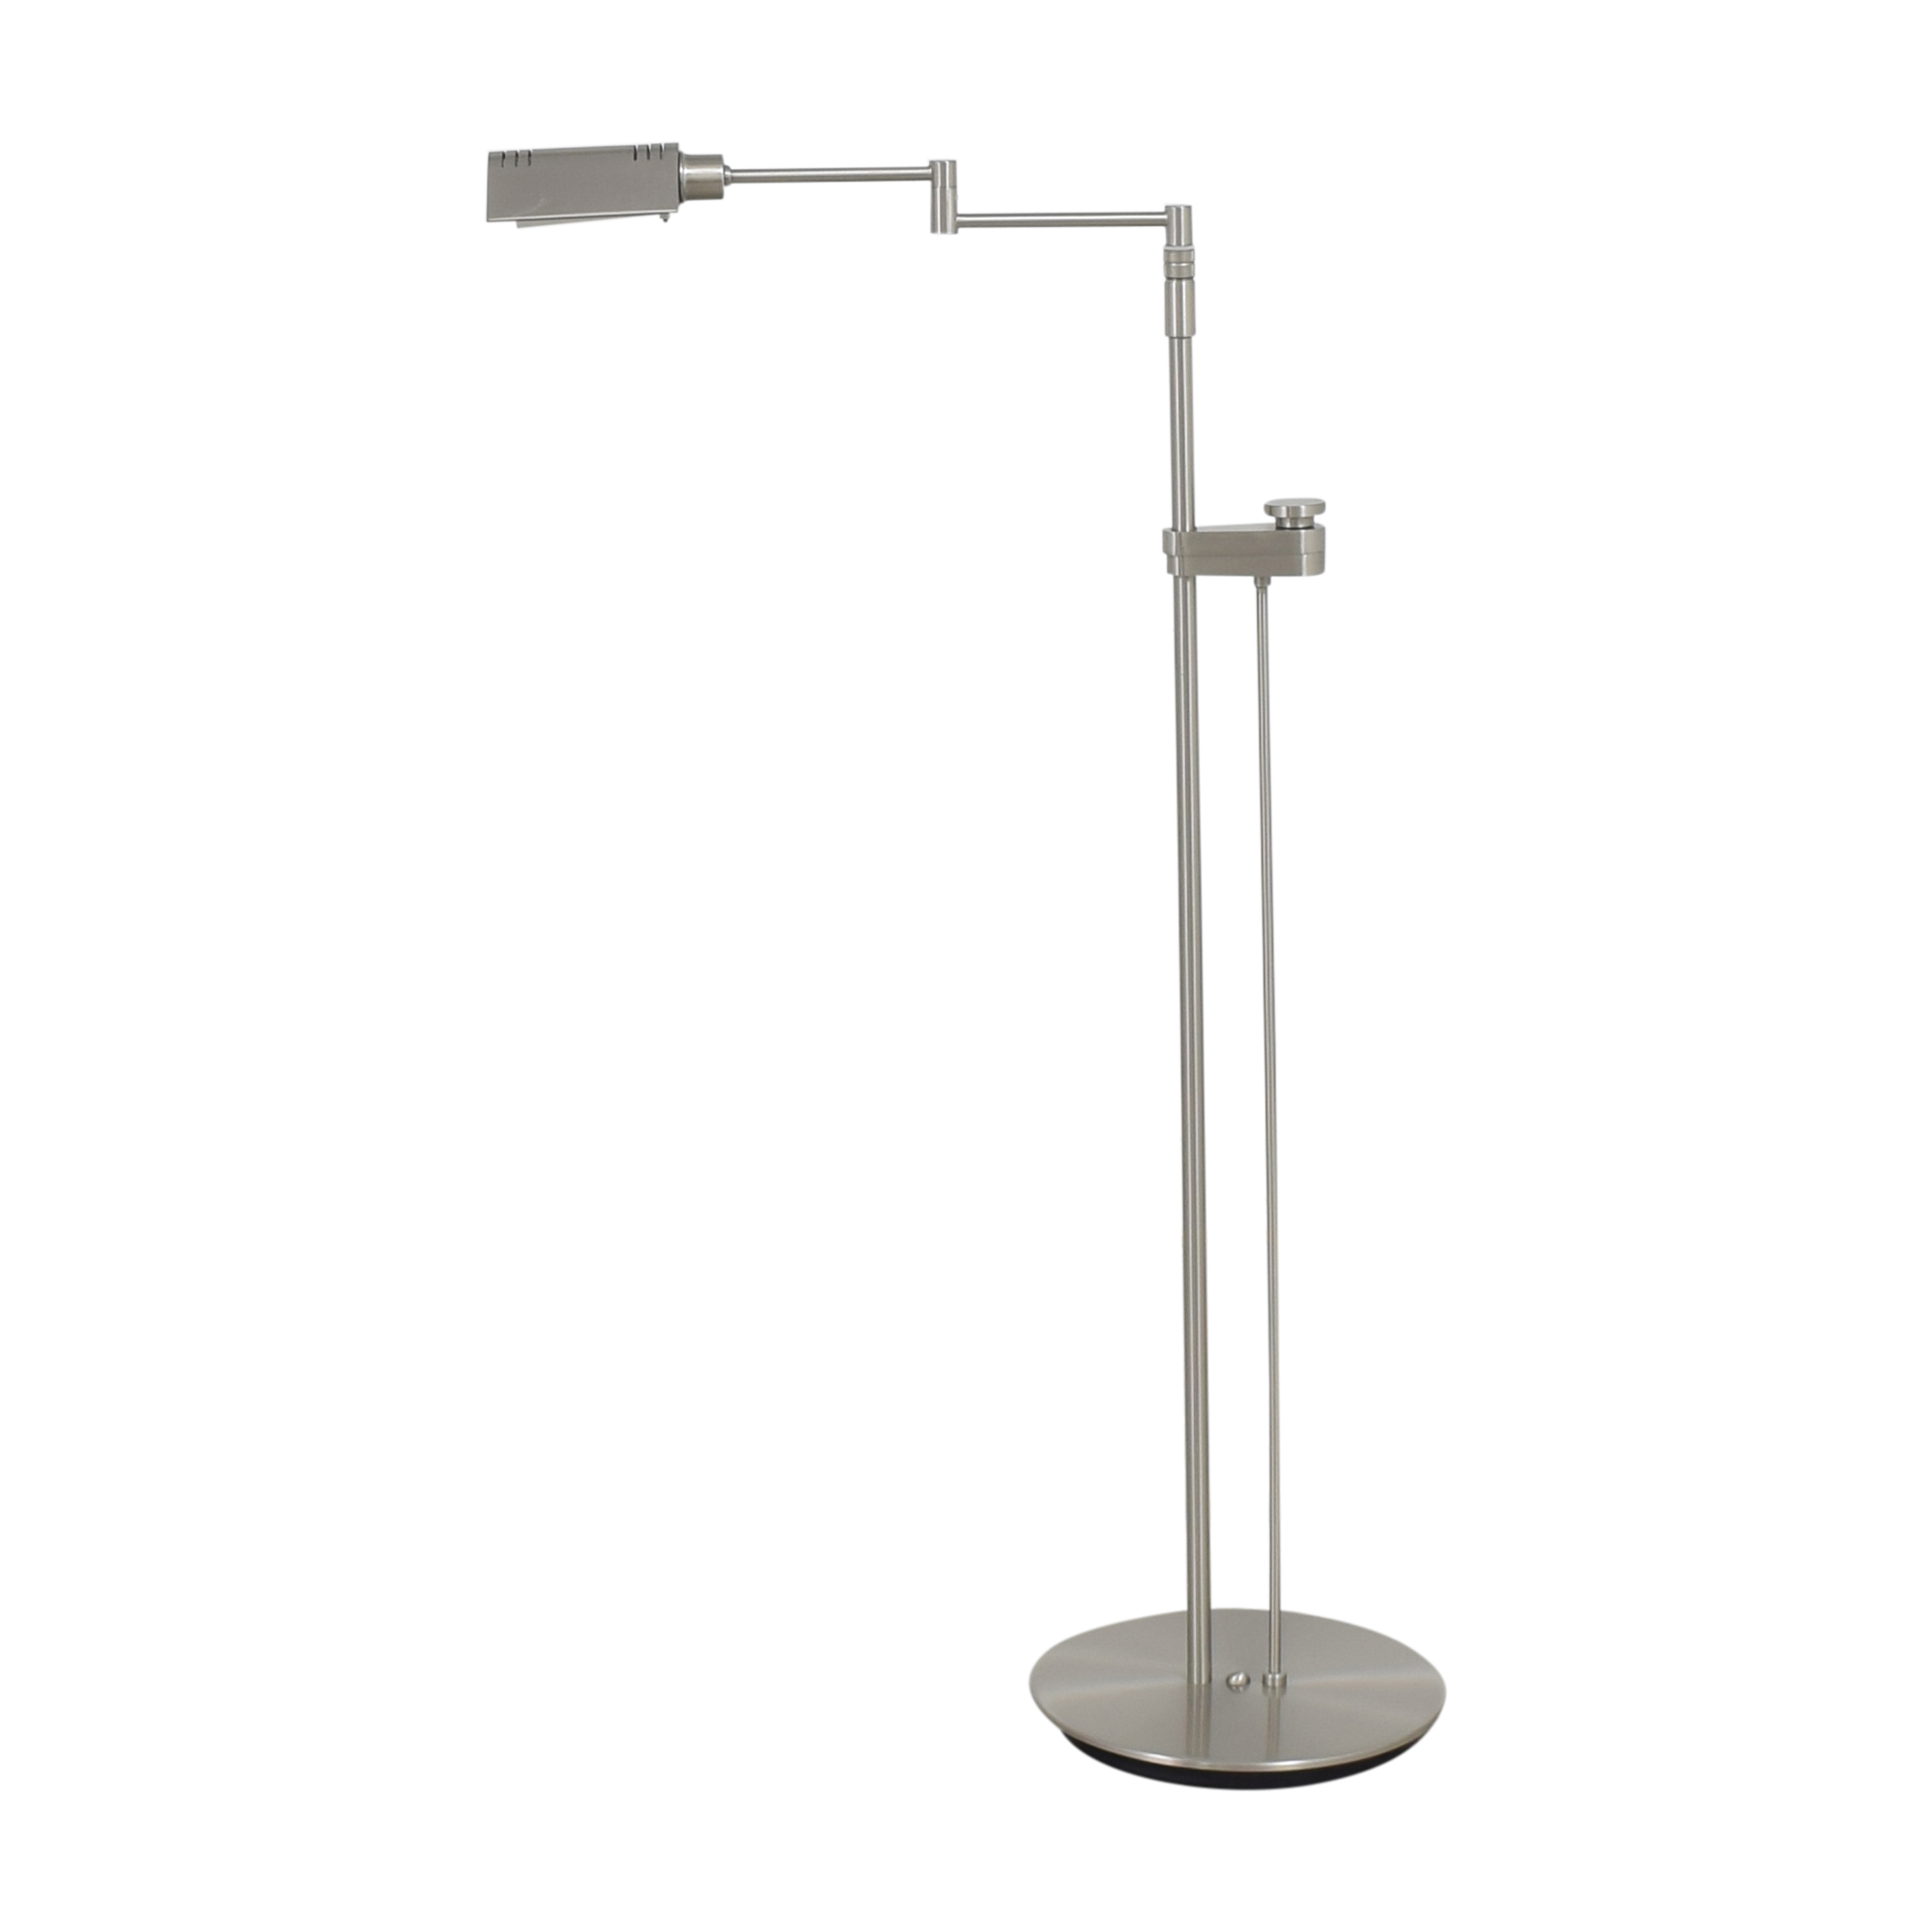 buy Holtkotter Holtkotter Swing Arm Floor Lamp online